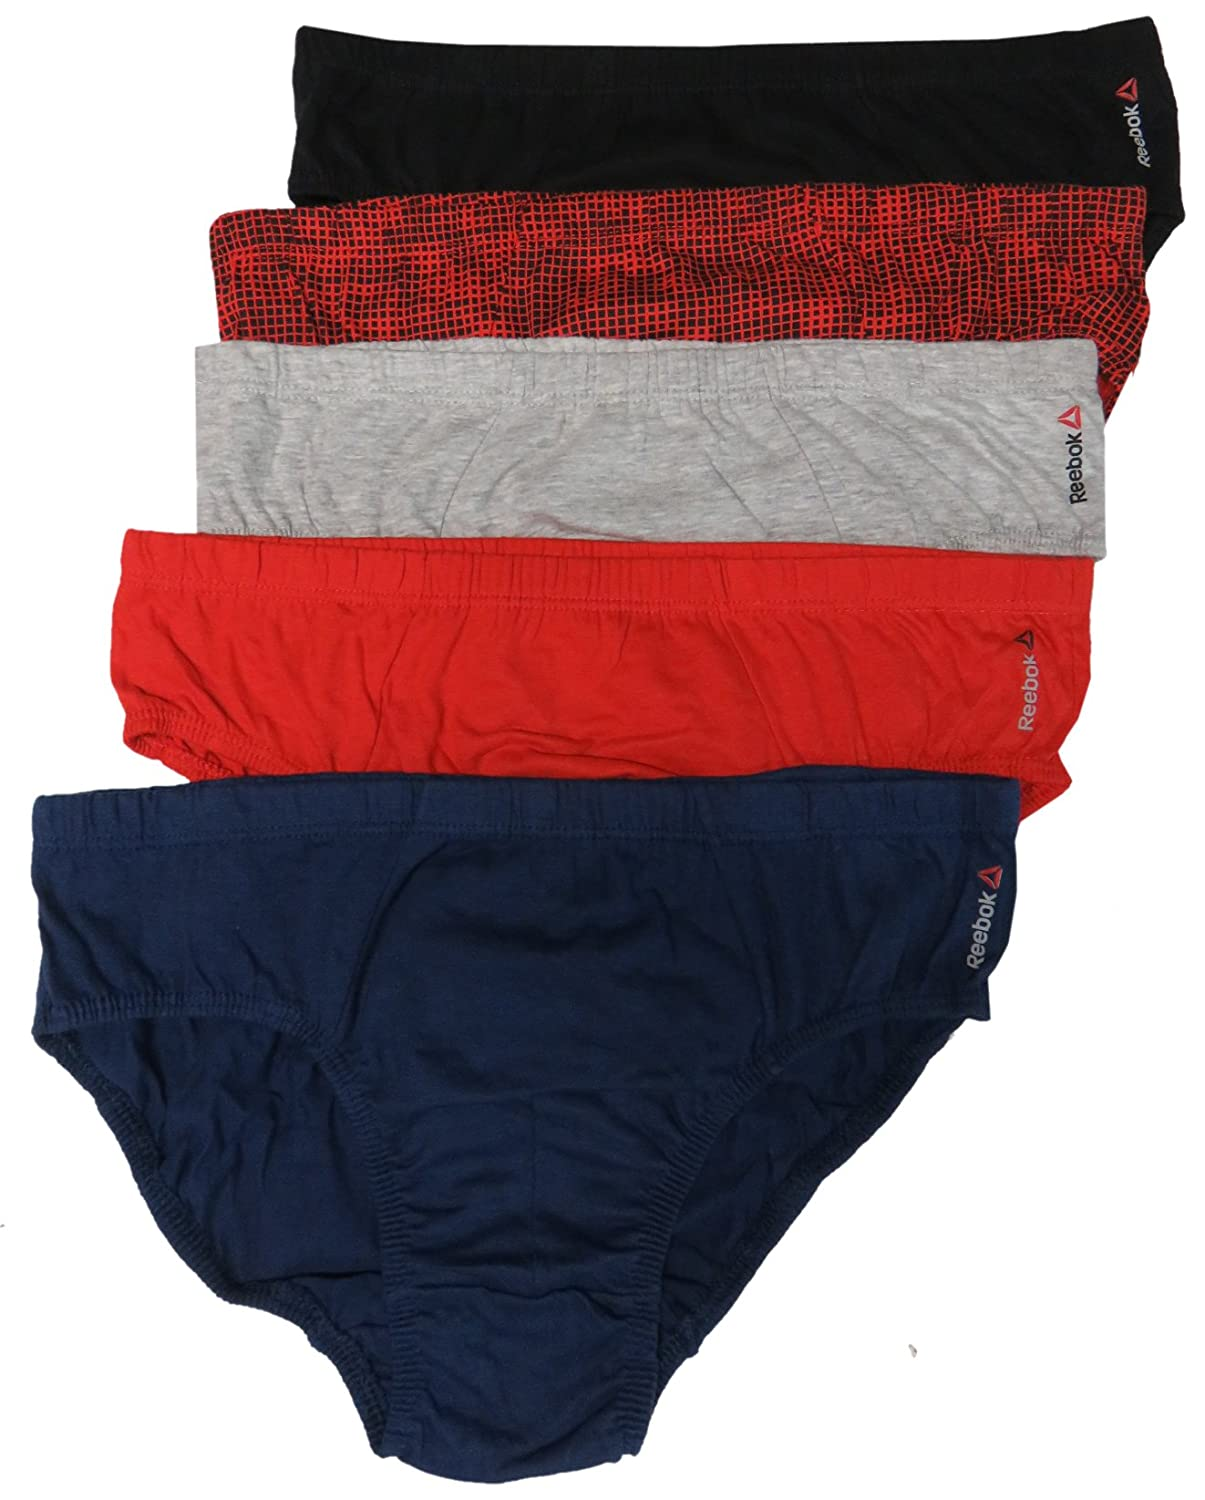 Size X-Large 40//42 Multi, Reebok Mens Low Rise Briefs Pack of 5